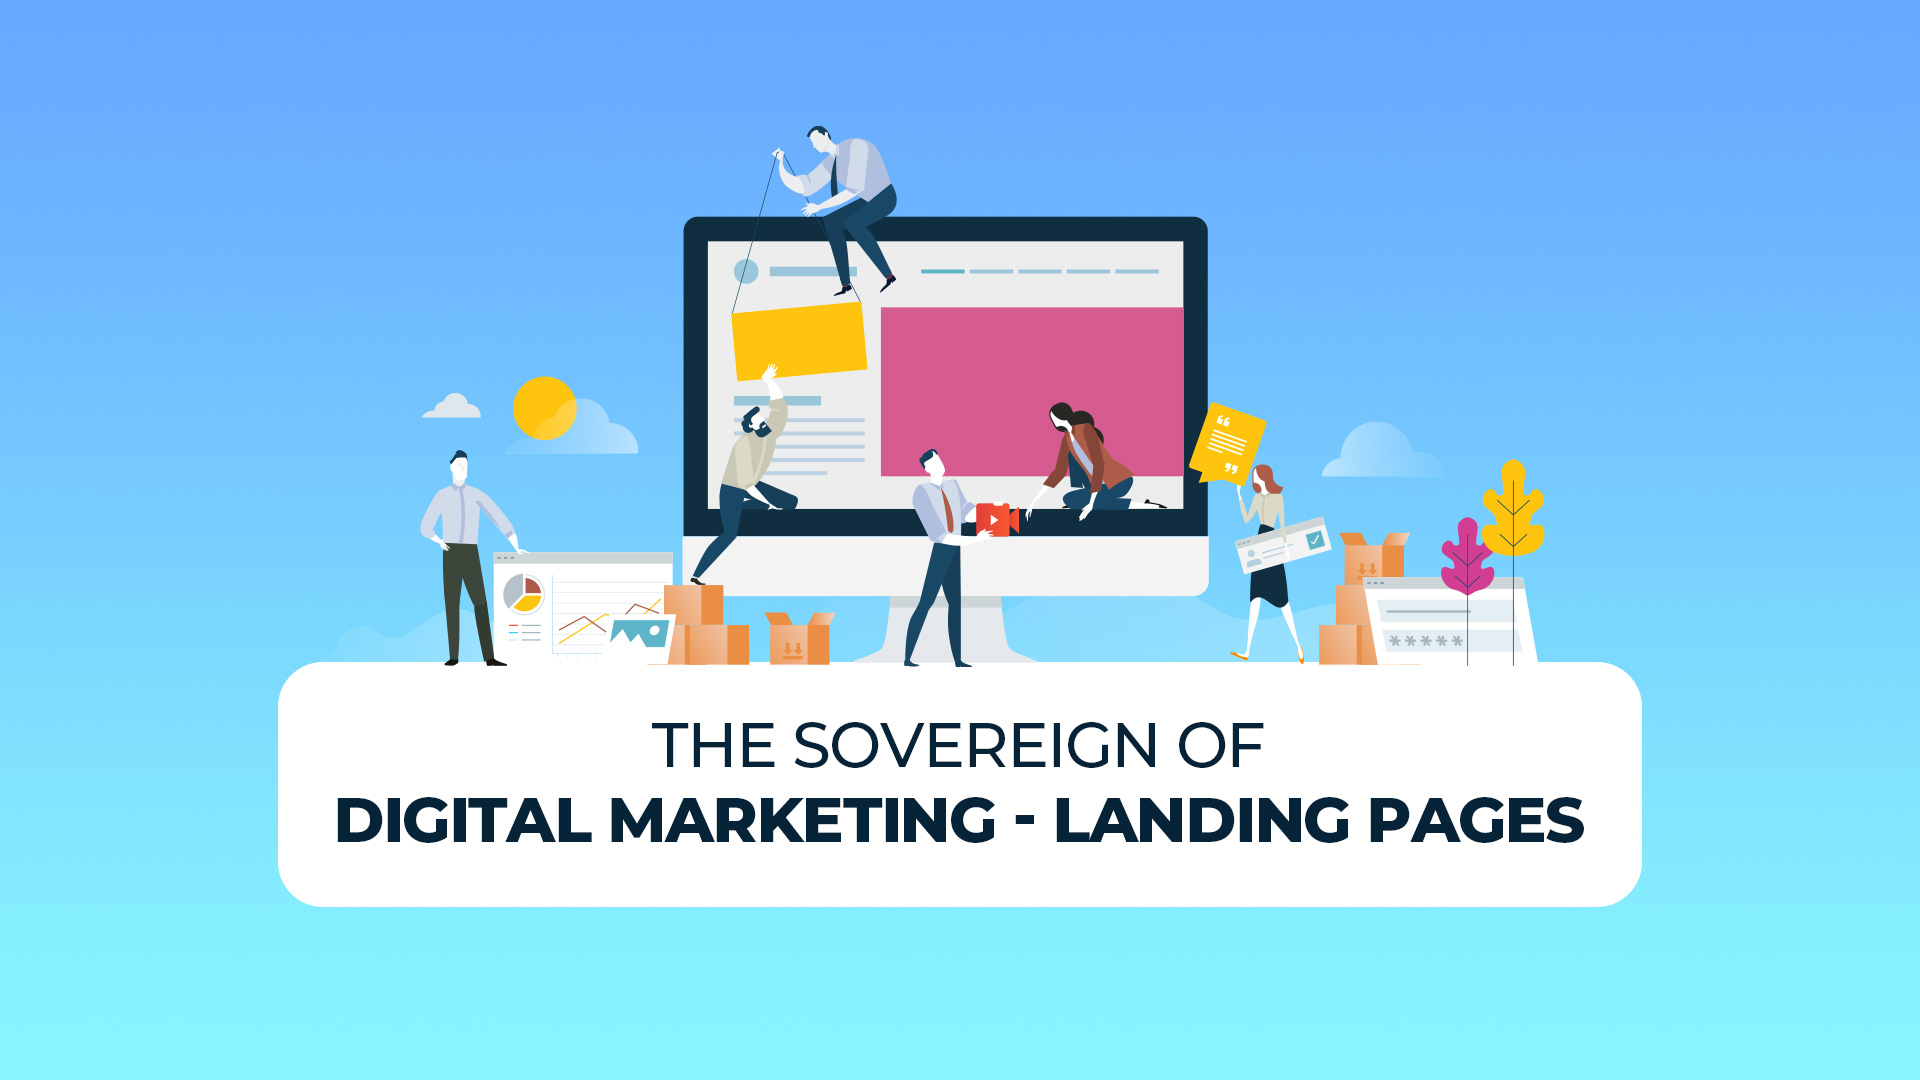 The Sovereign of Digital Marketing - Landing Pages